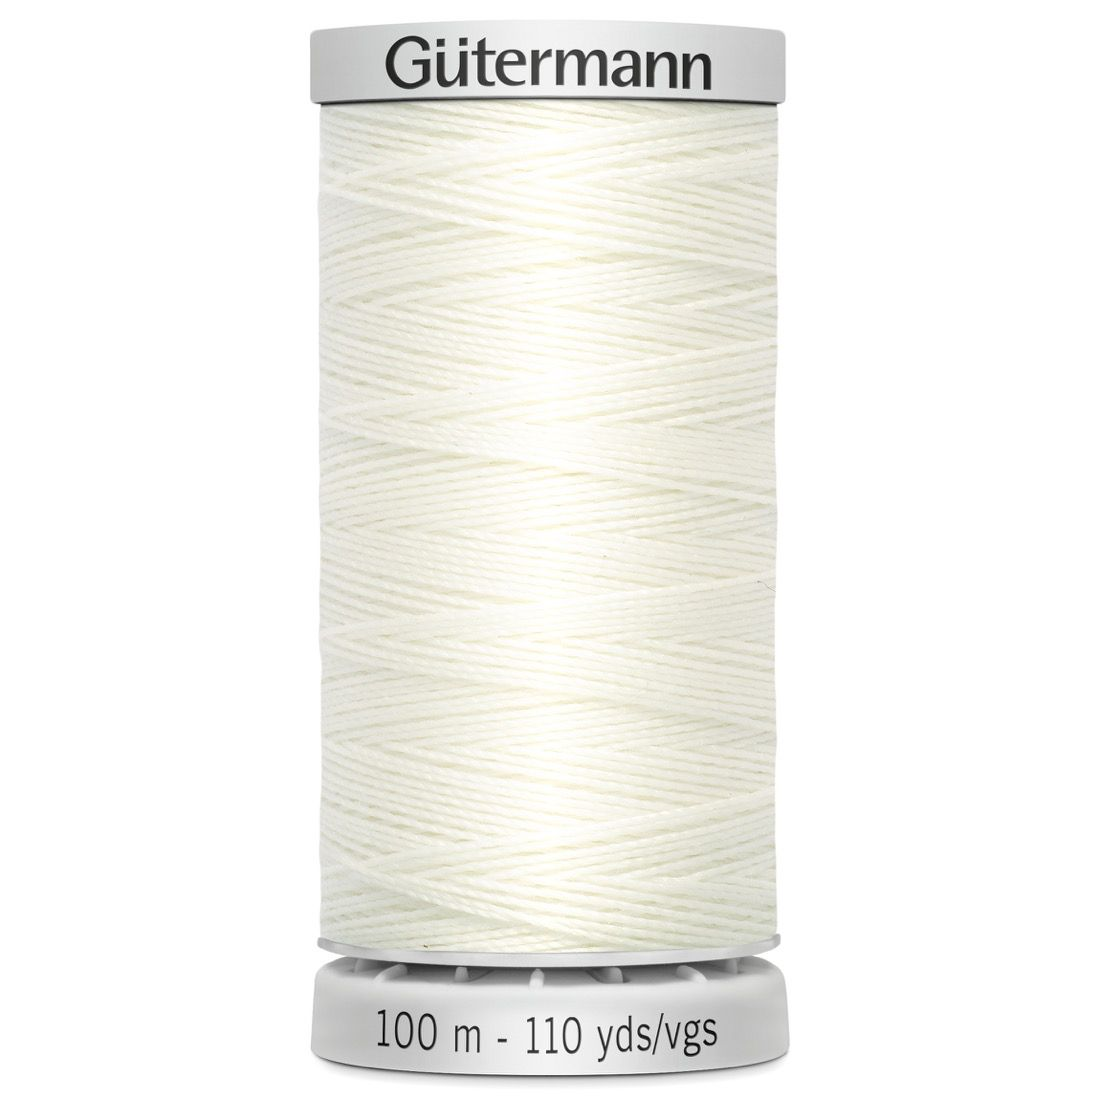 Gutermann Extra Strong Upholstery Thread - 100m - 111